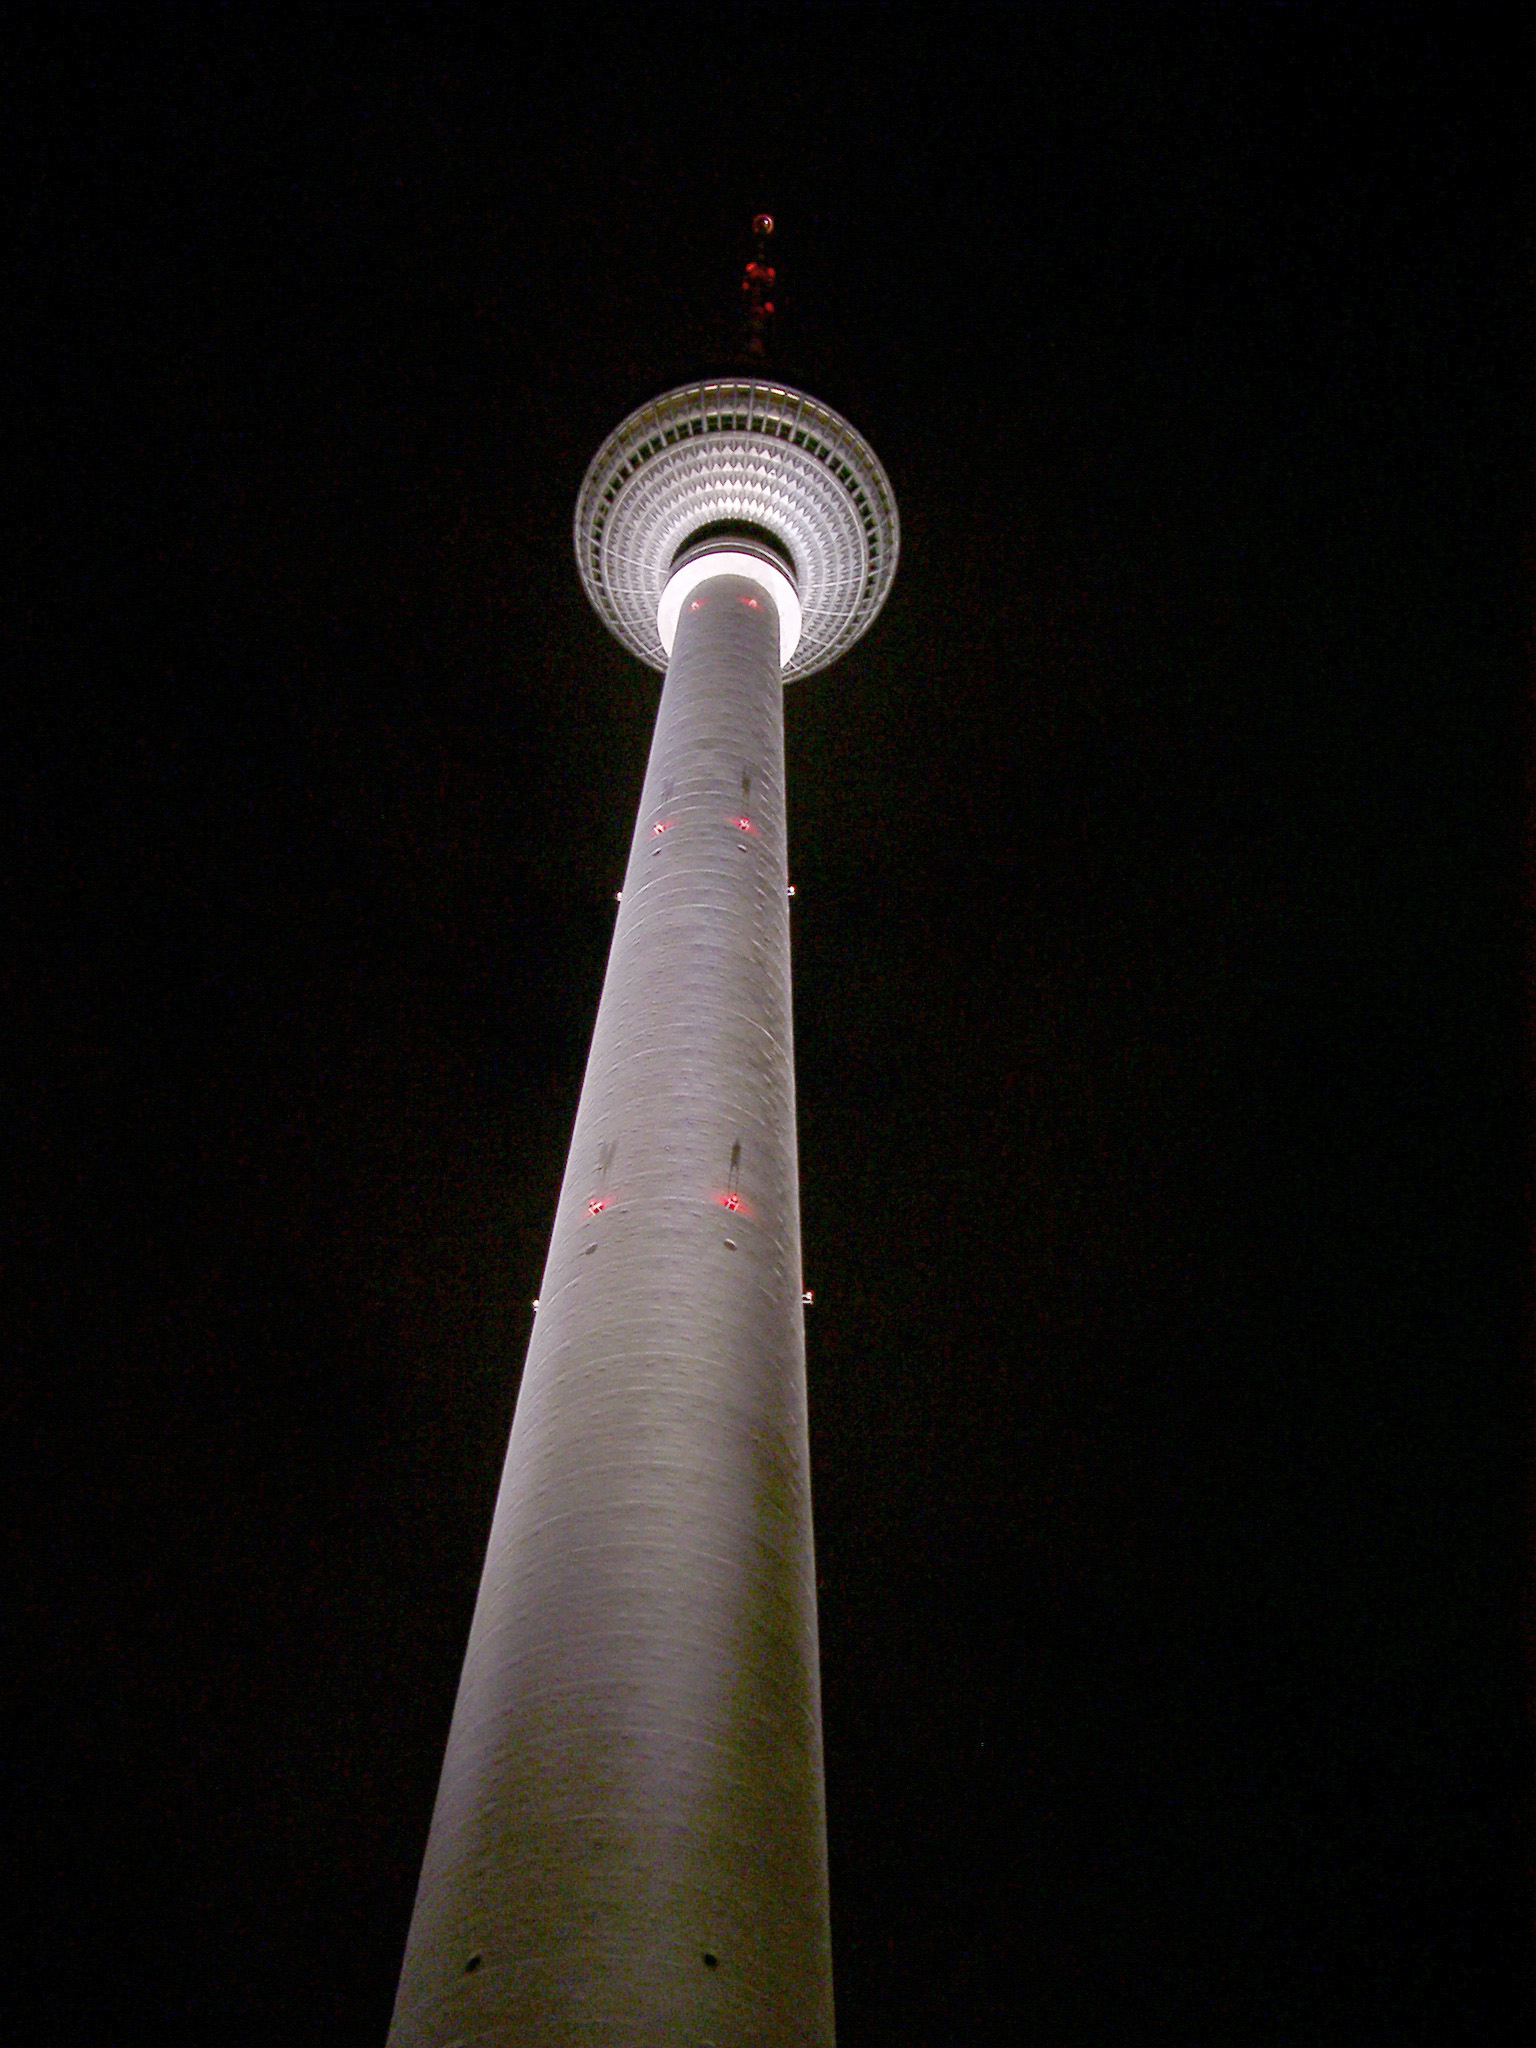 The Berliner Fernsehturm TV Tower at night viewed from the foot looking up to the sphere housing the restaurants and observation centre, illuminated against a dark night sky